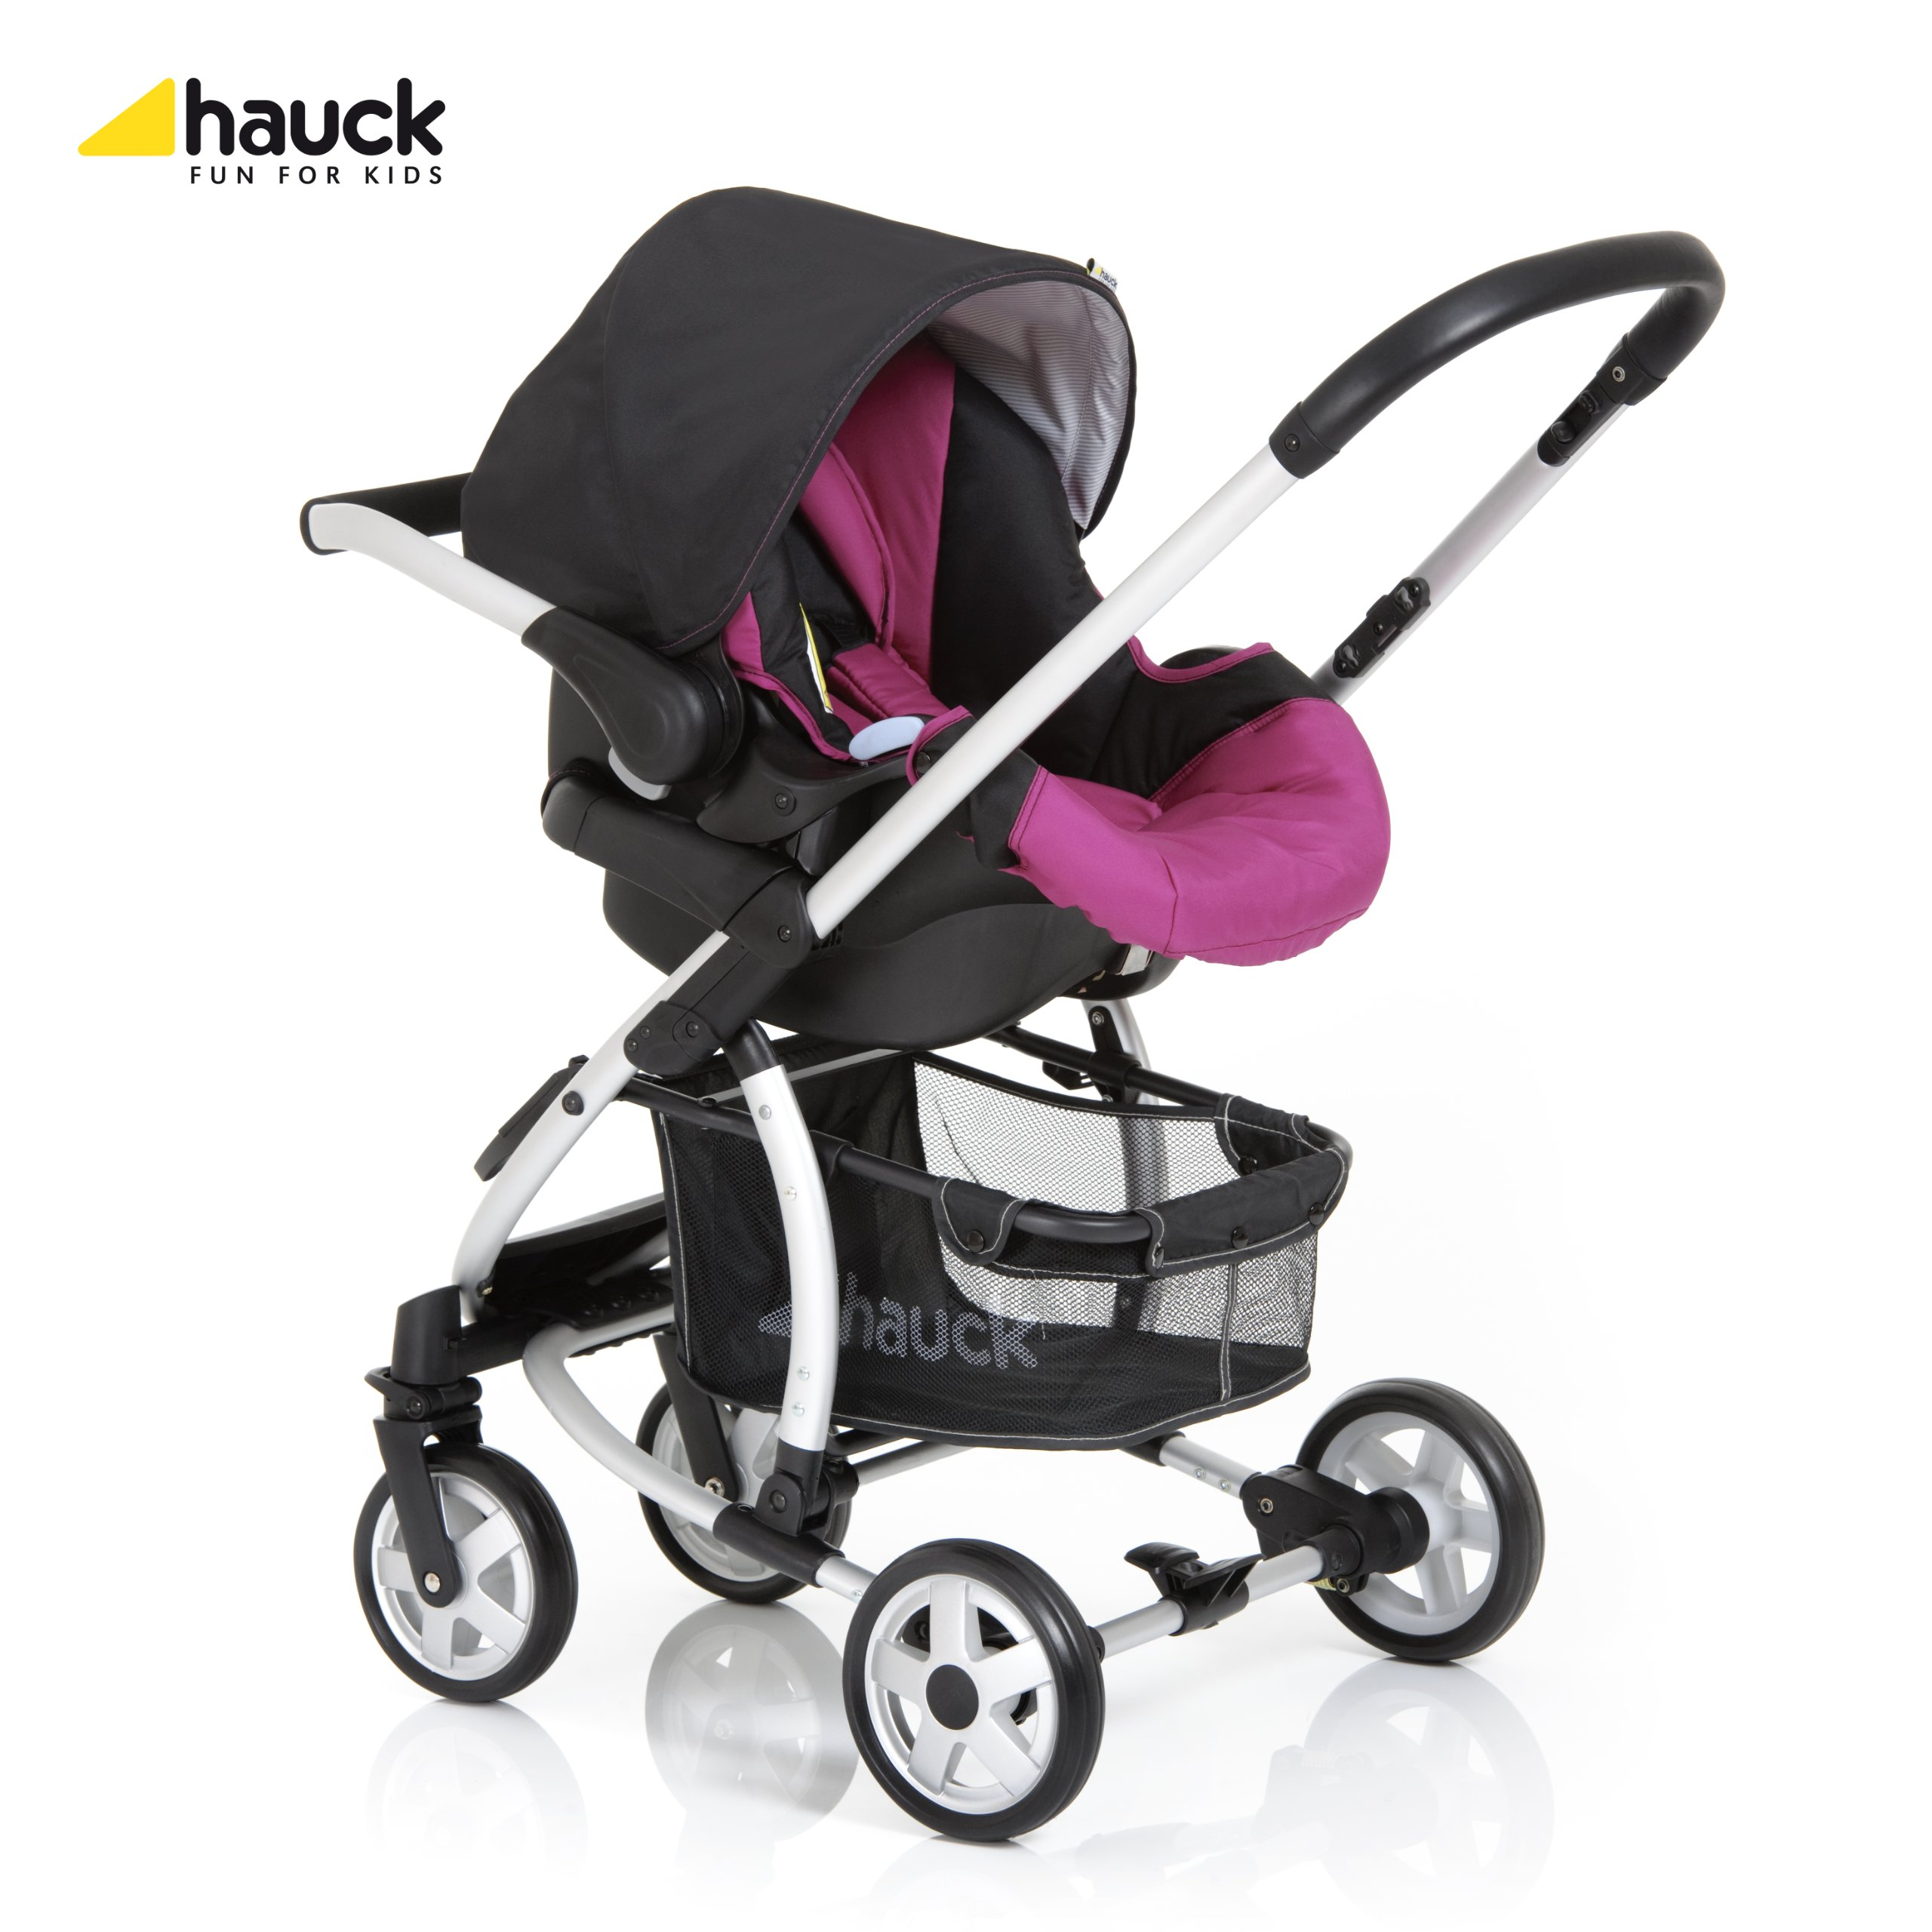 Malibu All-in-One Travel System